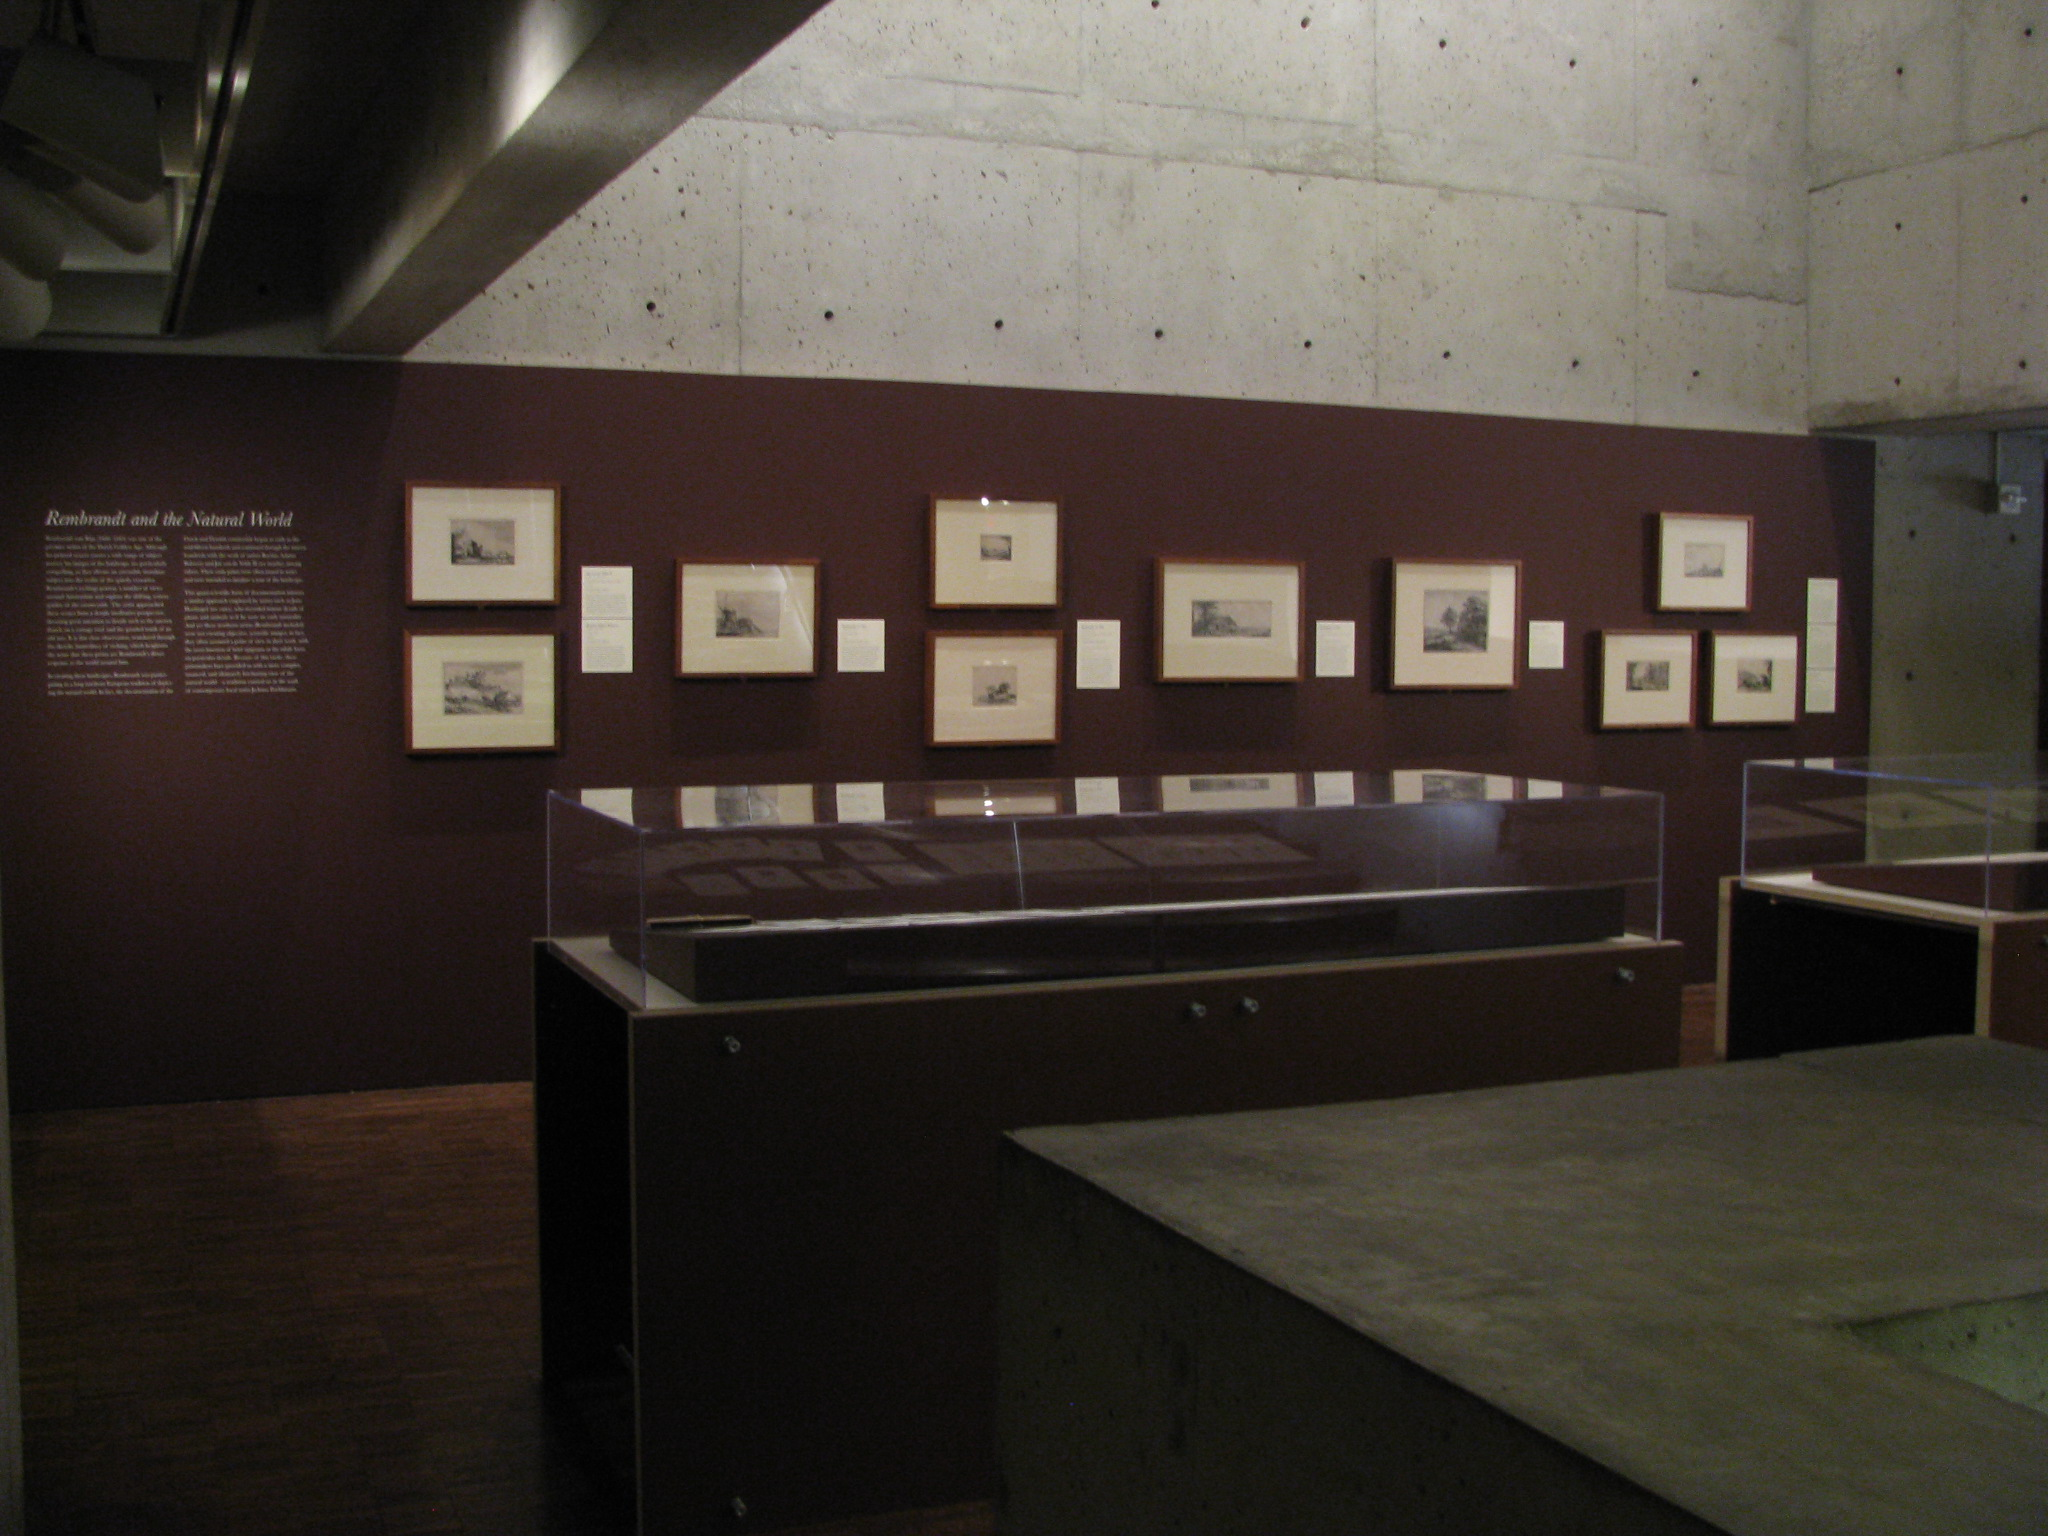 """Installation views of the """"Rembrandt and the Natural World"""" Mezzanine rotation. Photo by the author"""